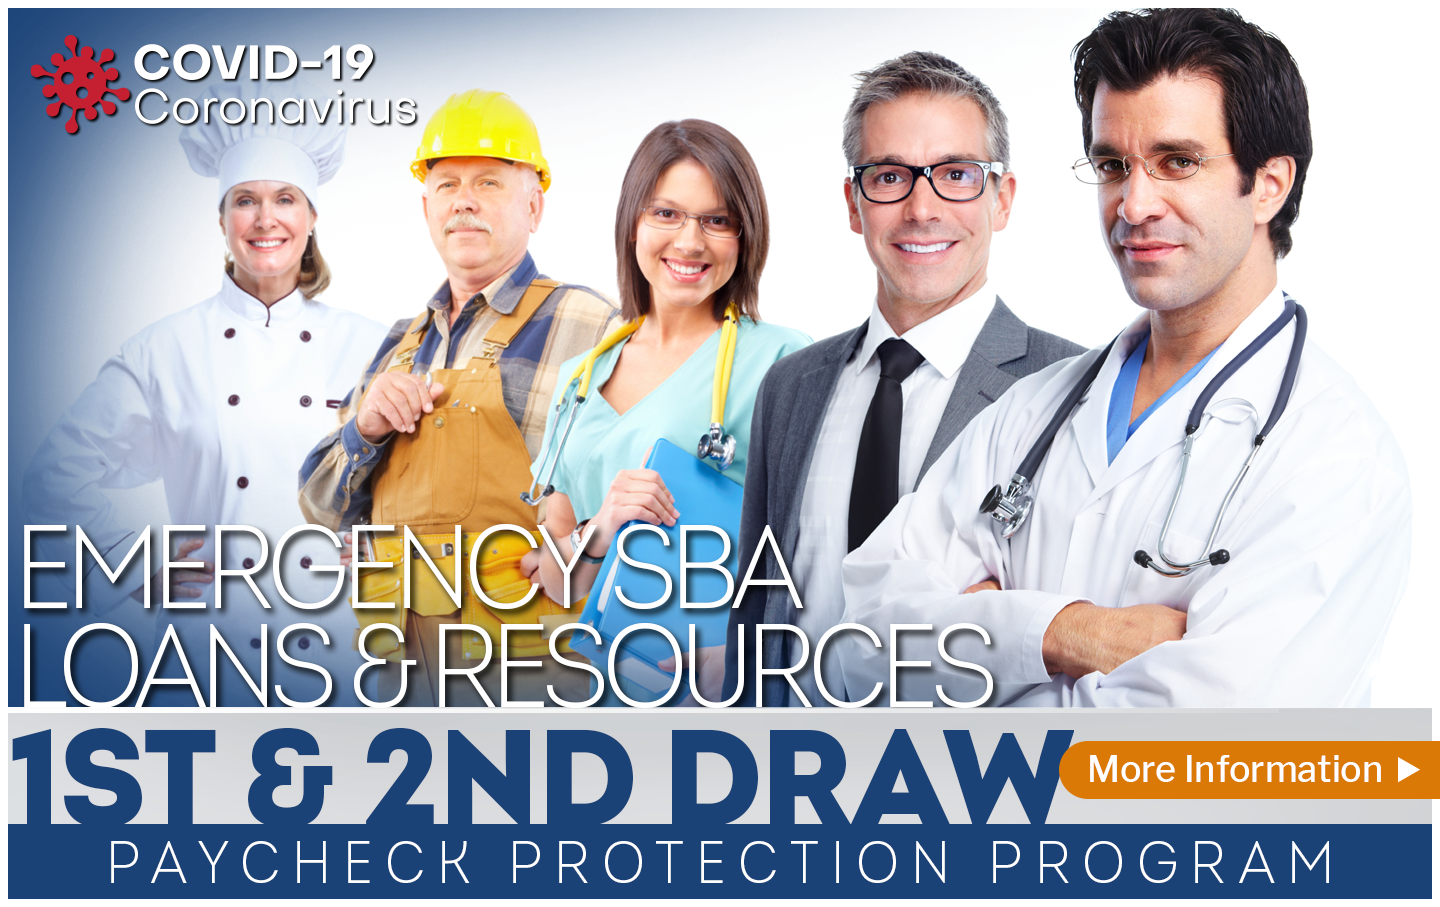 A doctor, business man, surgeon, construction worker and chef standing together in an ad promoting Second Draw Paycheck Protection Program